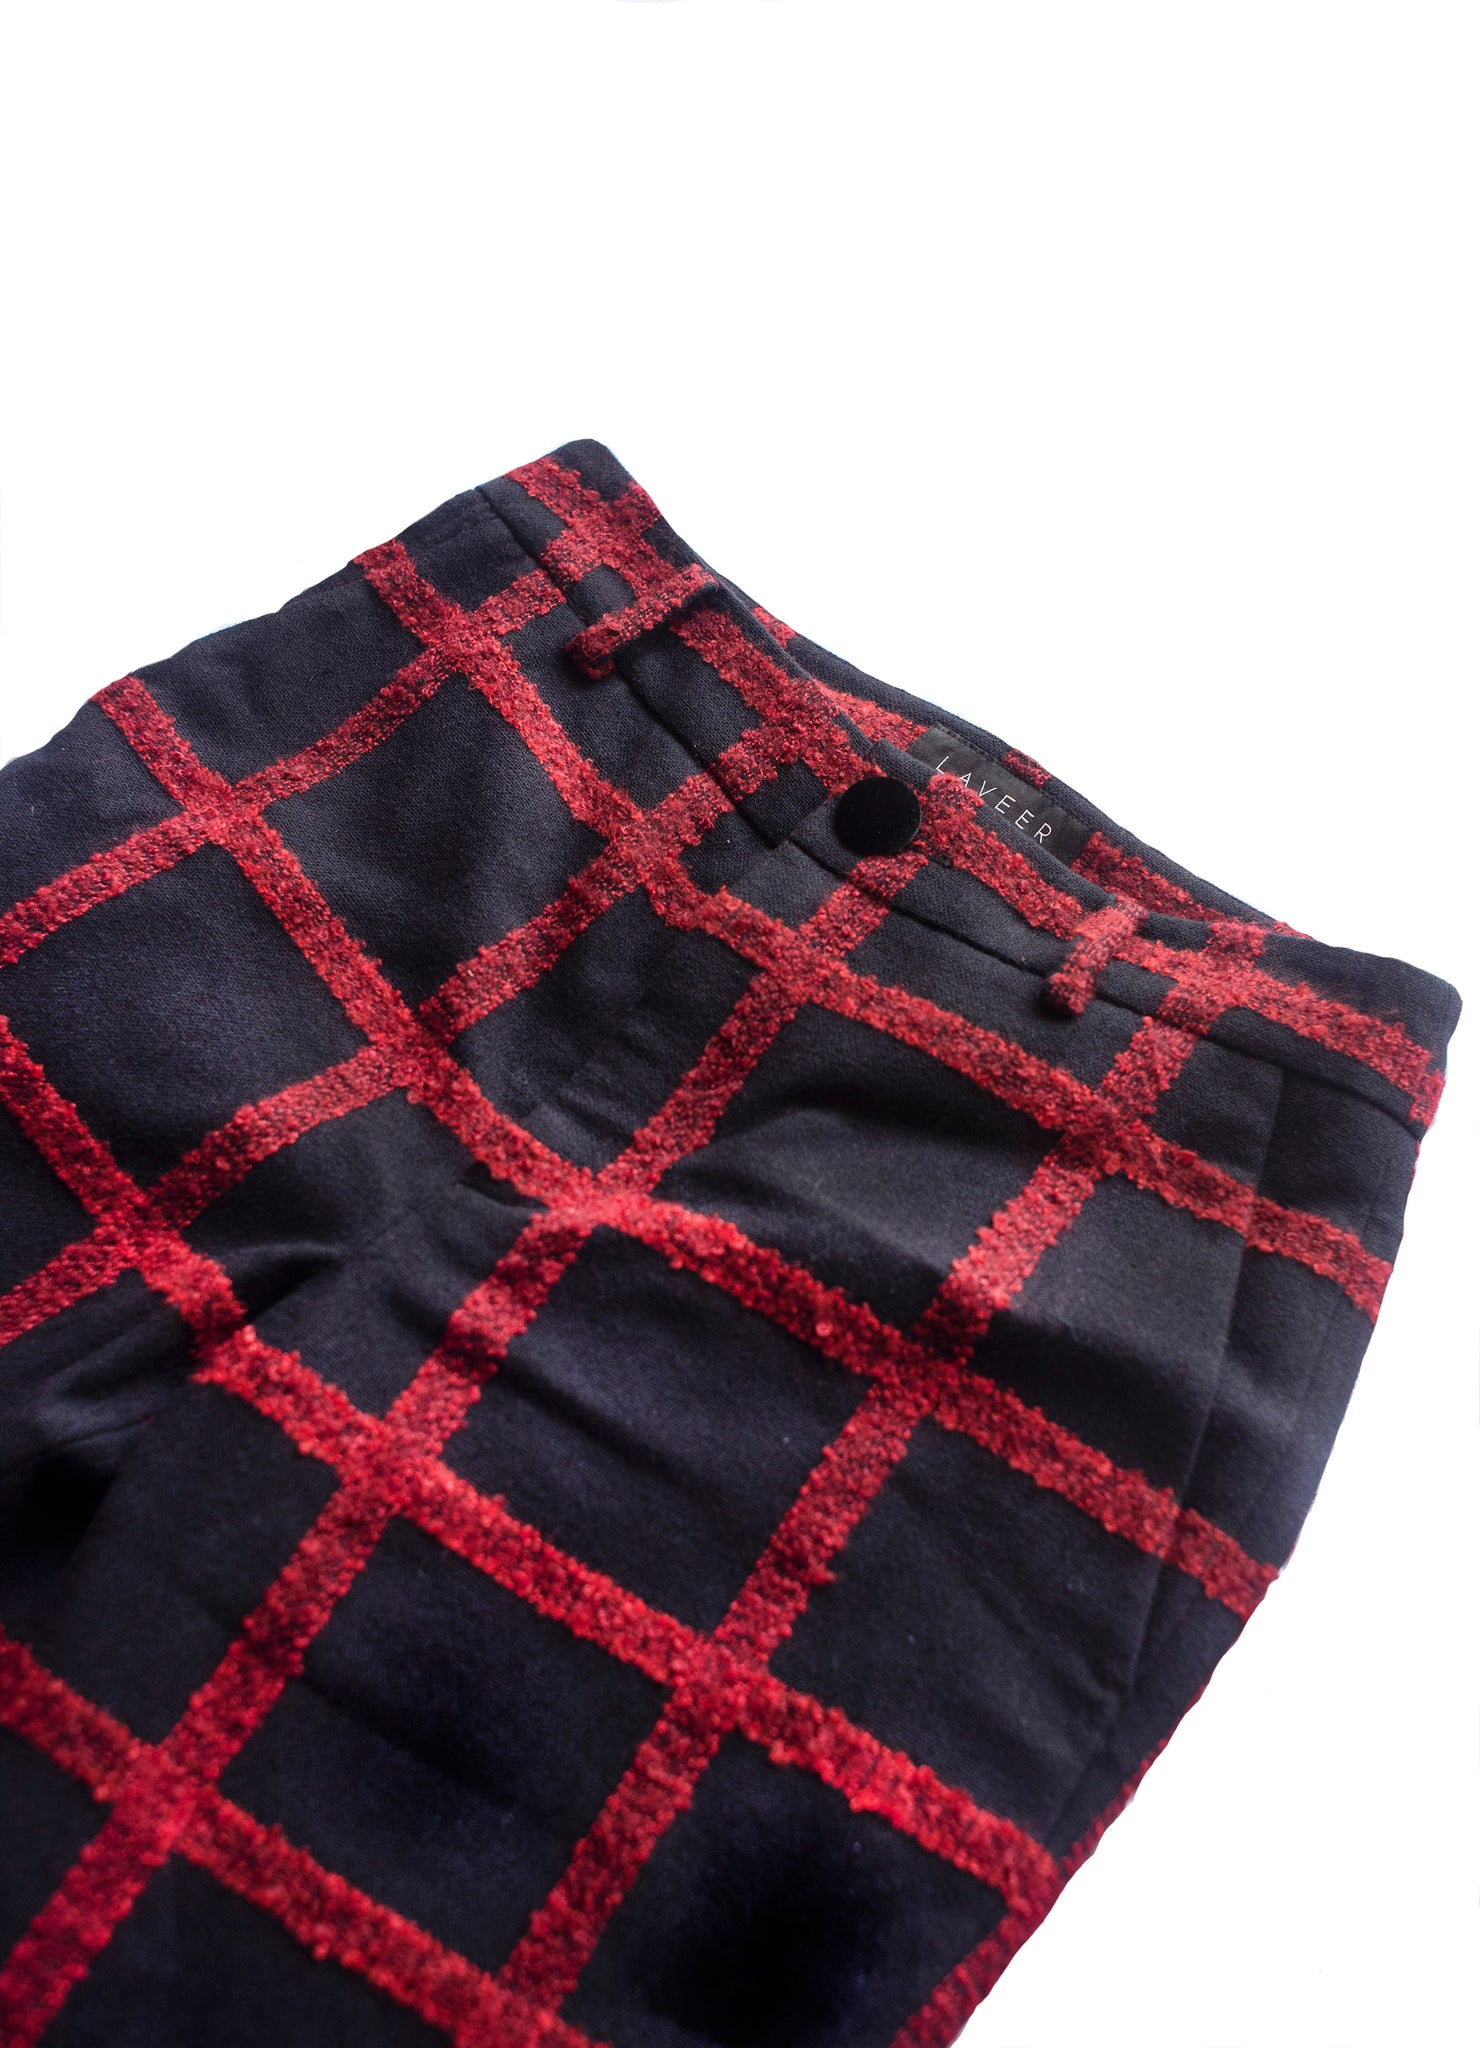 LAVEER Annie Cropped Pant in navy and red tweed